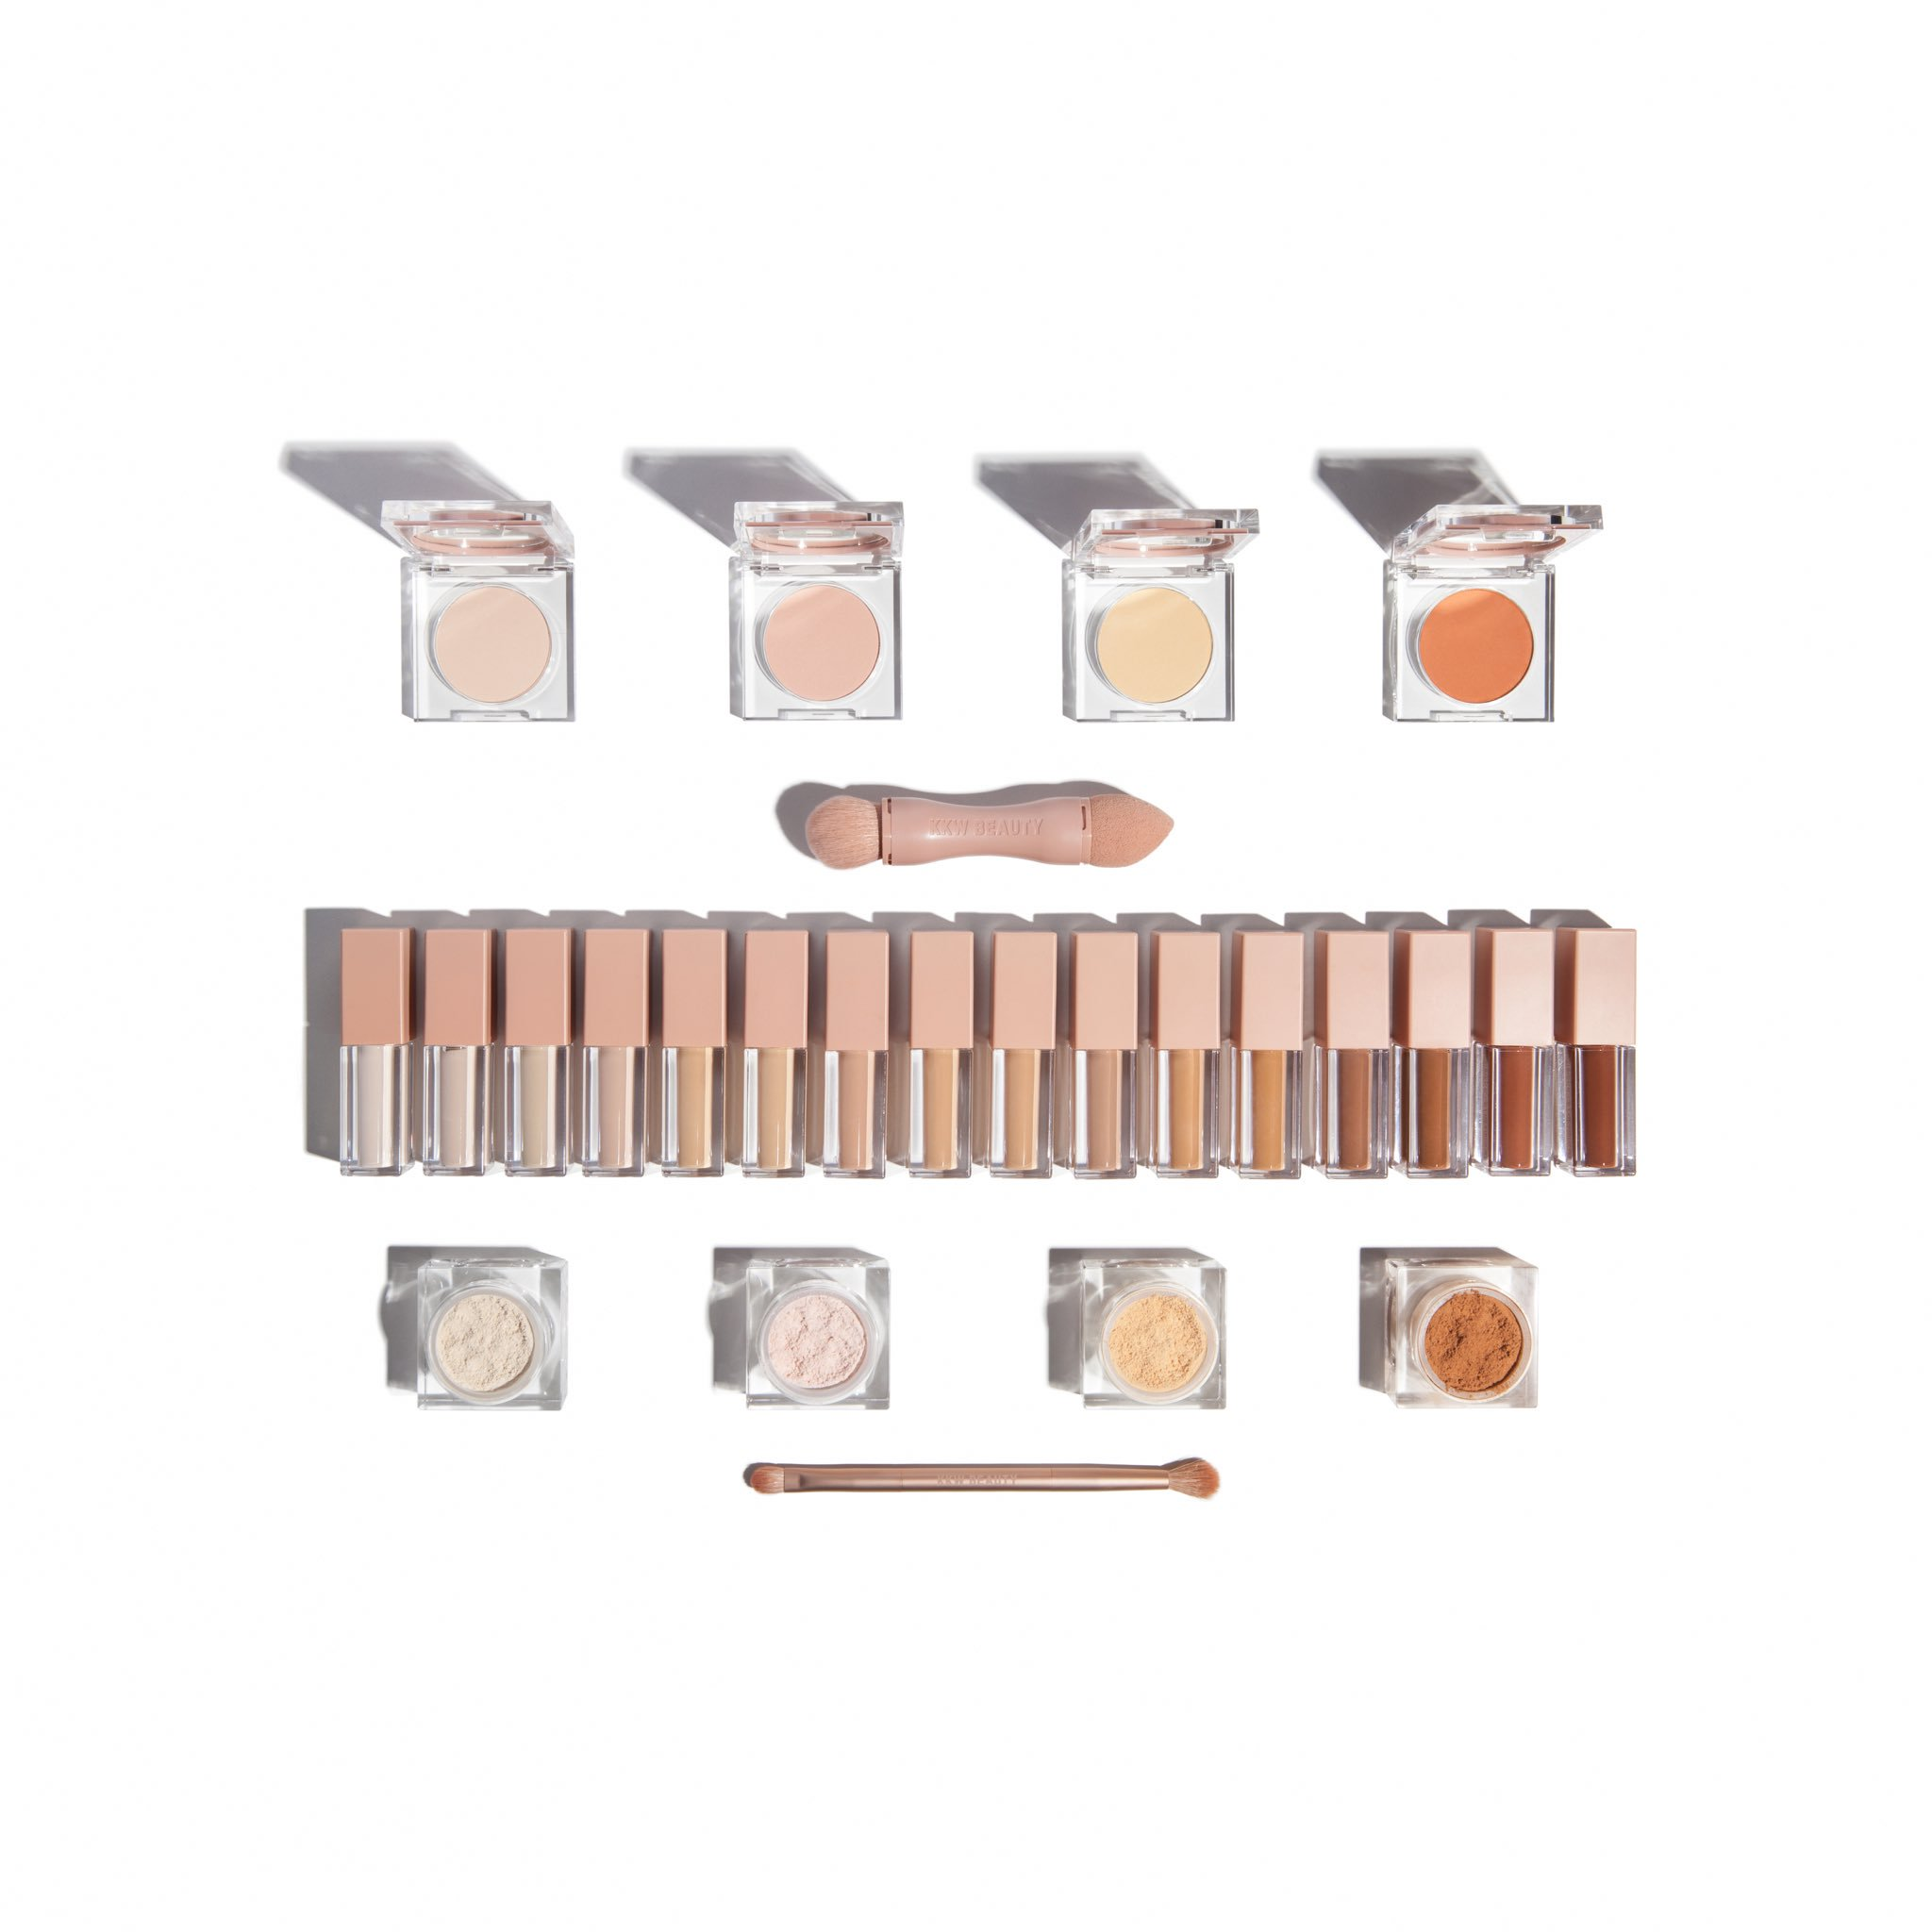 Concealer restock AND #KKWXARGENIS are both happening at 12PM PST today at https://t.co/PoBZ3bhjs8! https://t.co/LDQBnu4Czf